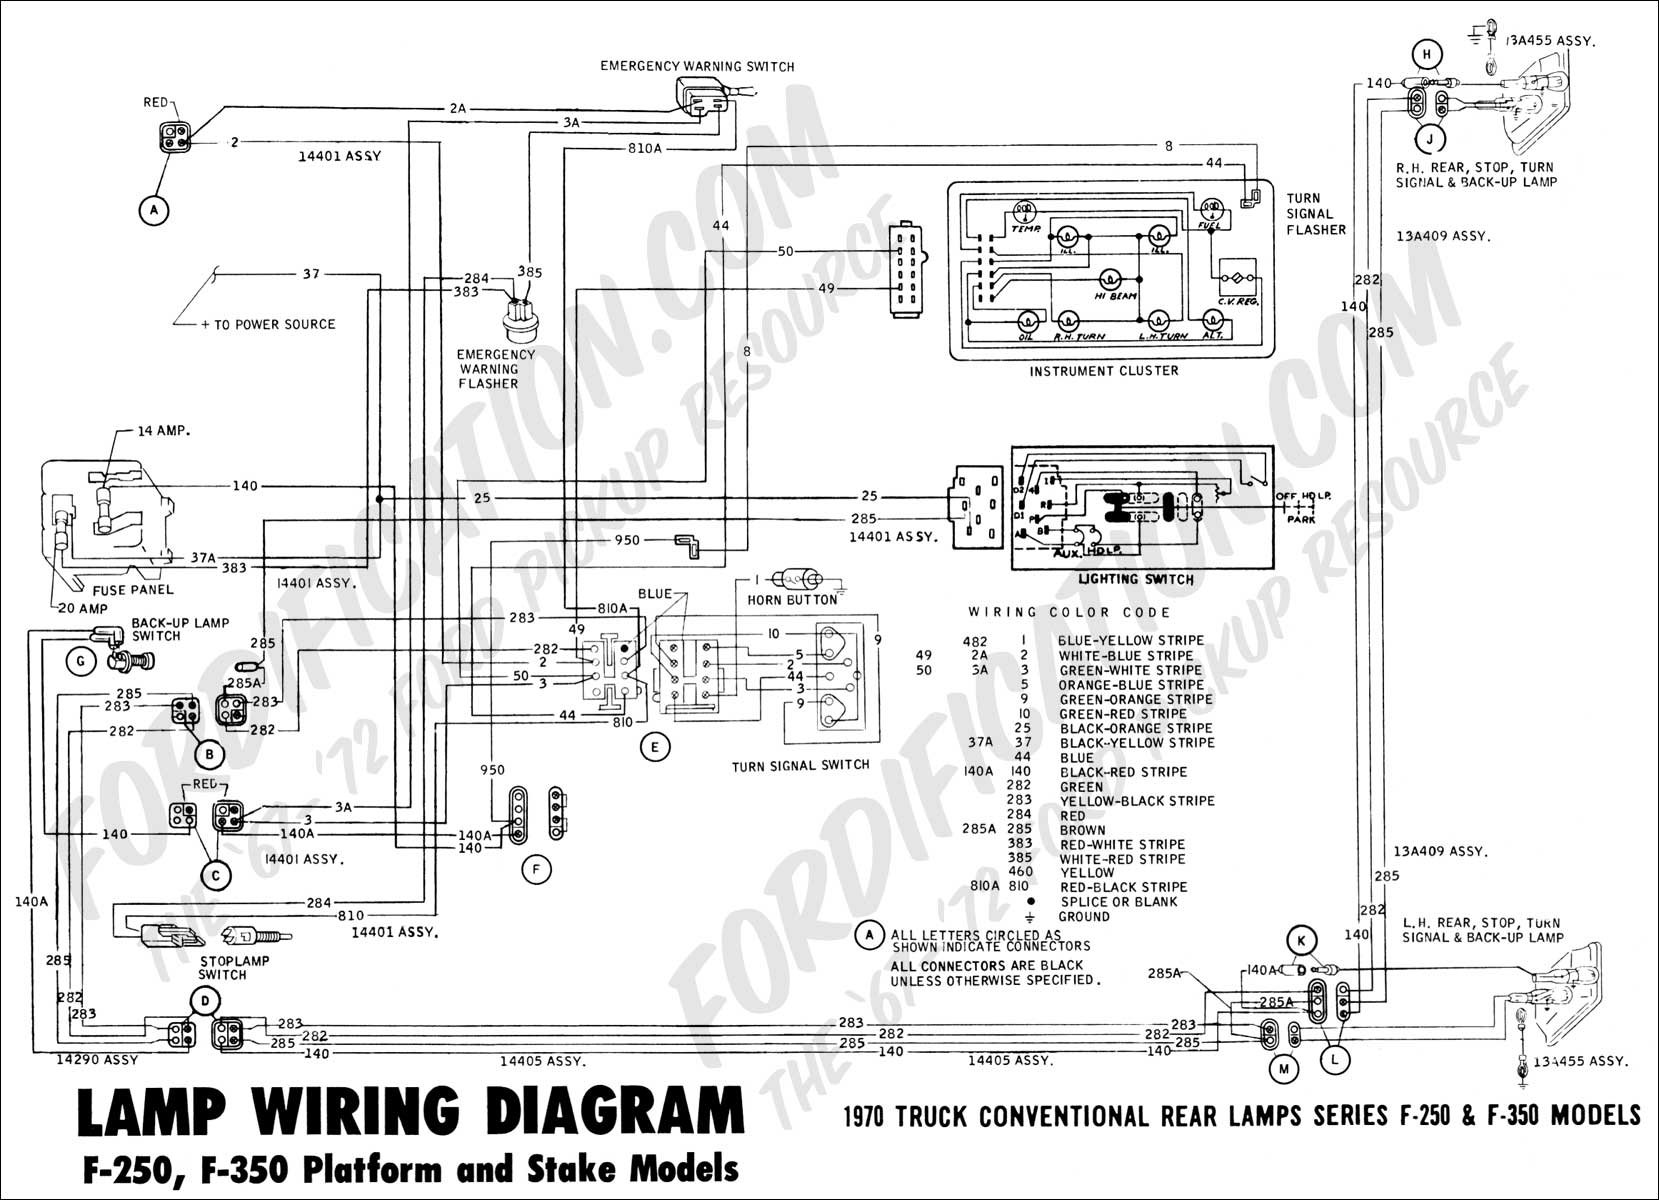 ford truck technical drawings and schematics - section h ... 2004 ford f 250 stereo wiring diagram 1990 ford f 250 headlight wiring diagram